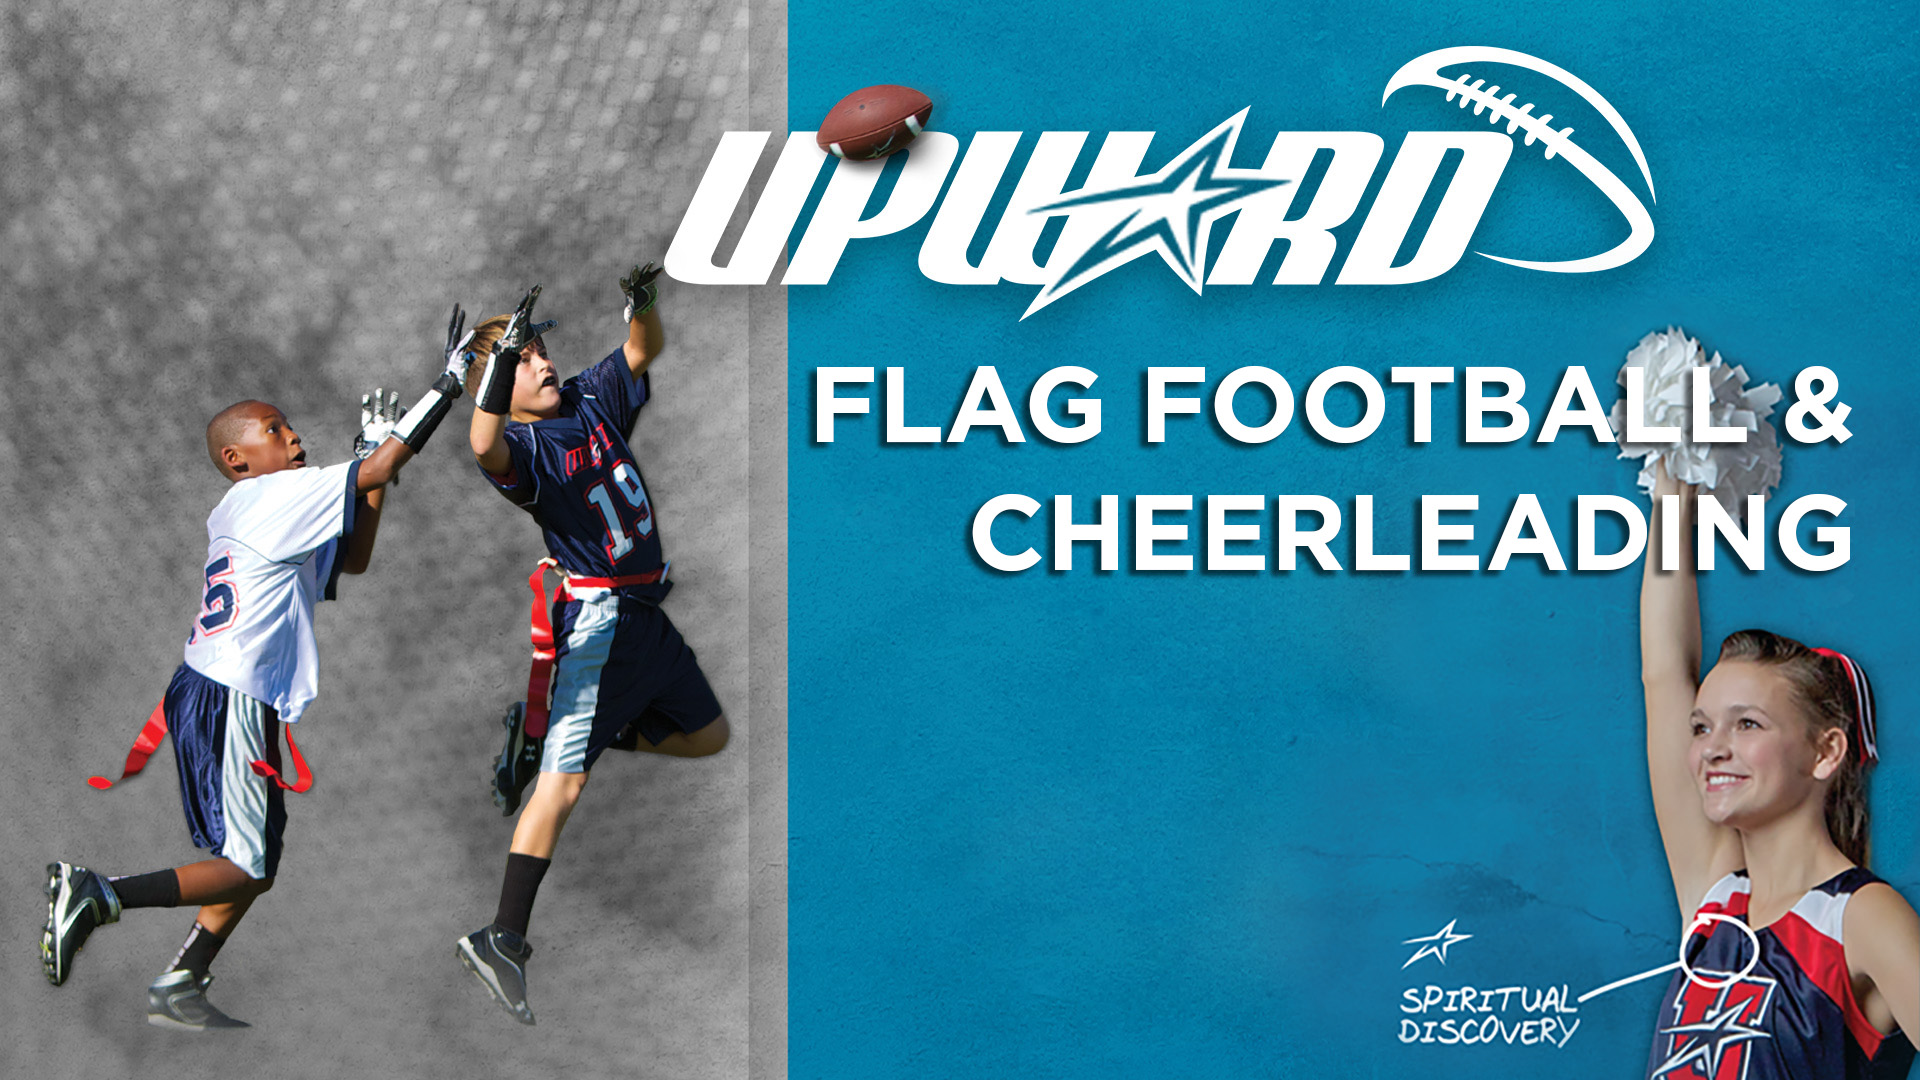 Upward Flag Football & Cheerleading